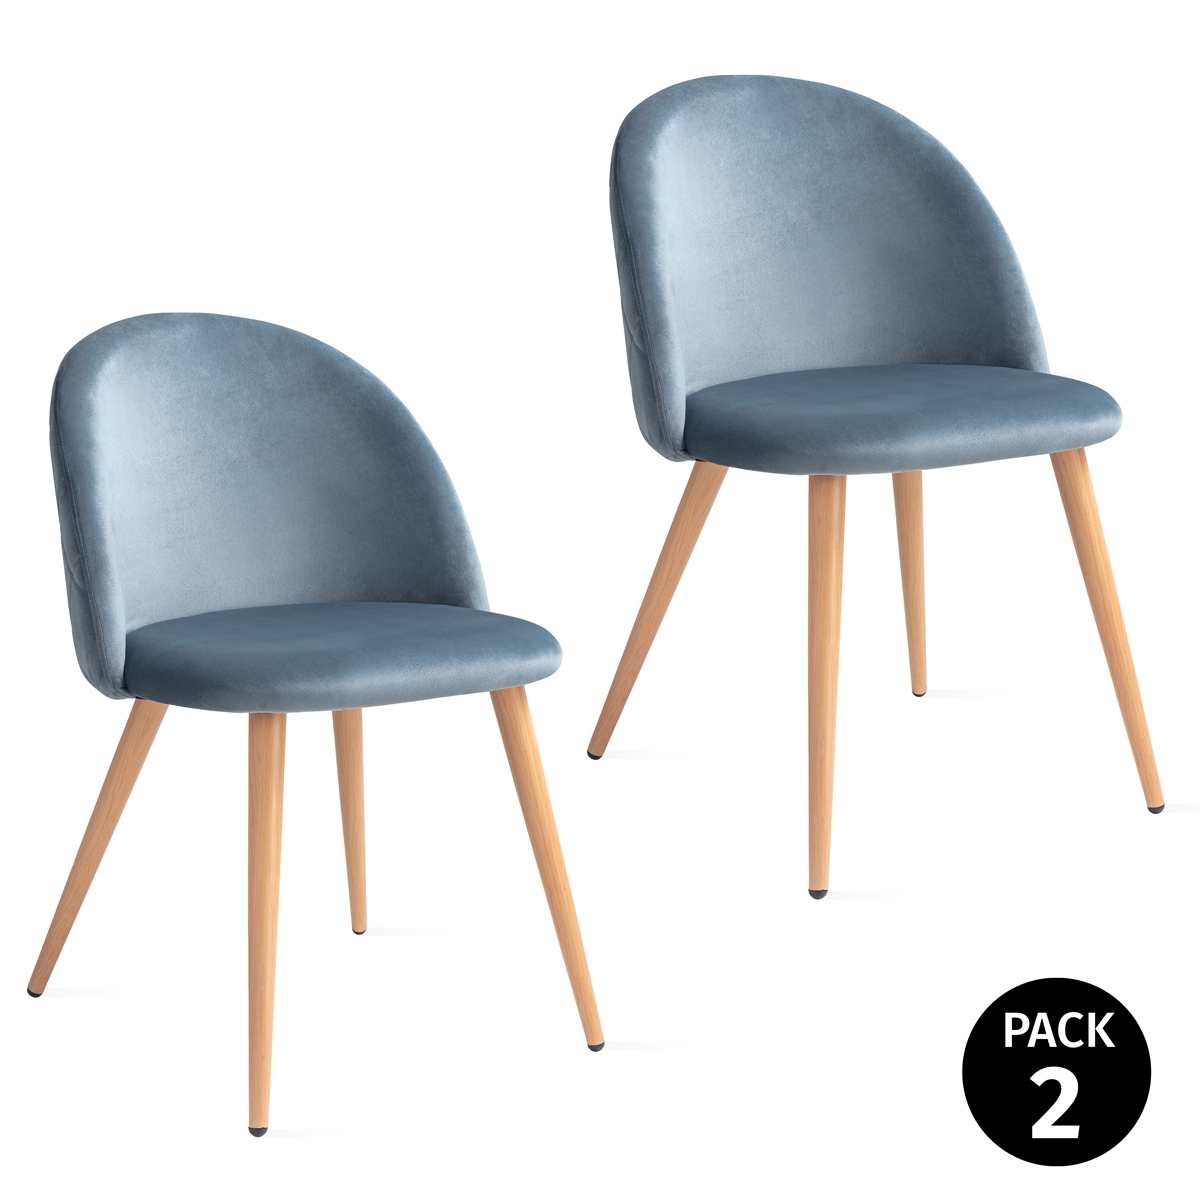 Pack 2 Sillas De Dining Room Tapizadas Terciopleo's Blue Pearl, Bar Chair Chair, Chair Nordica Respaldo Up Seat Padded 49x46x77cm